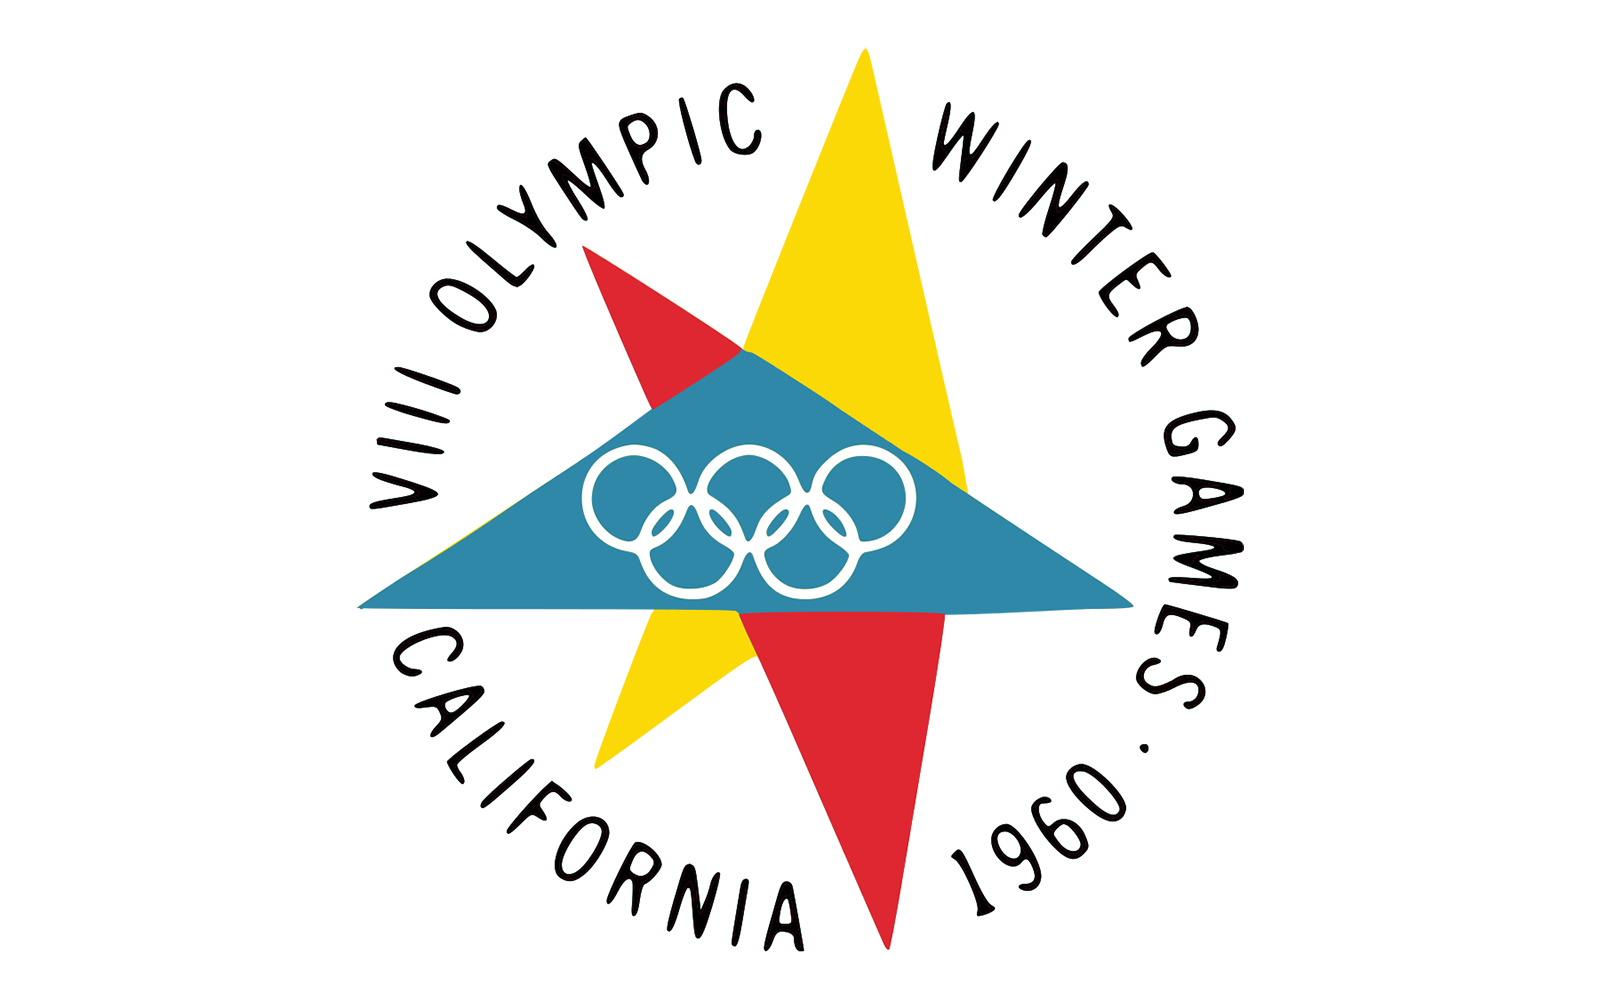 The Olympic Emblem From Symbol Of The Games To Promotion